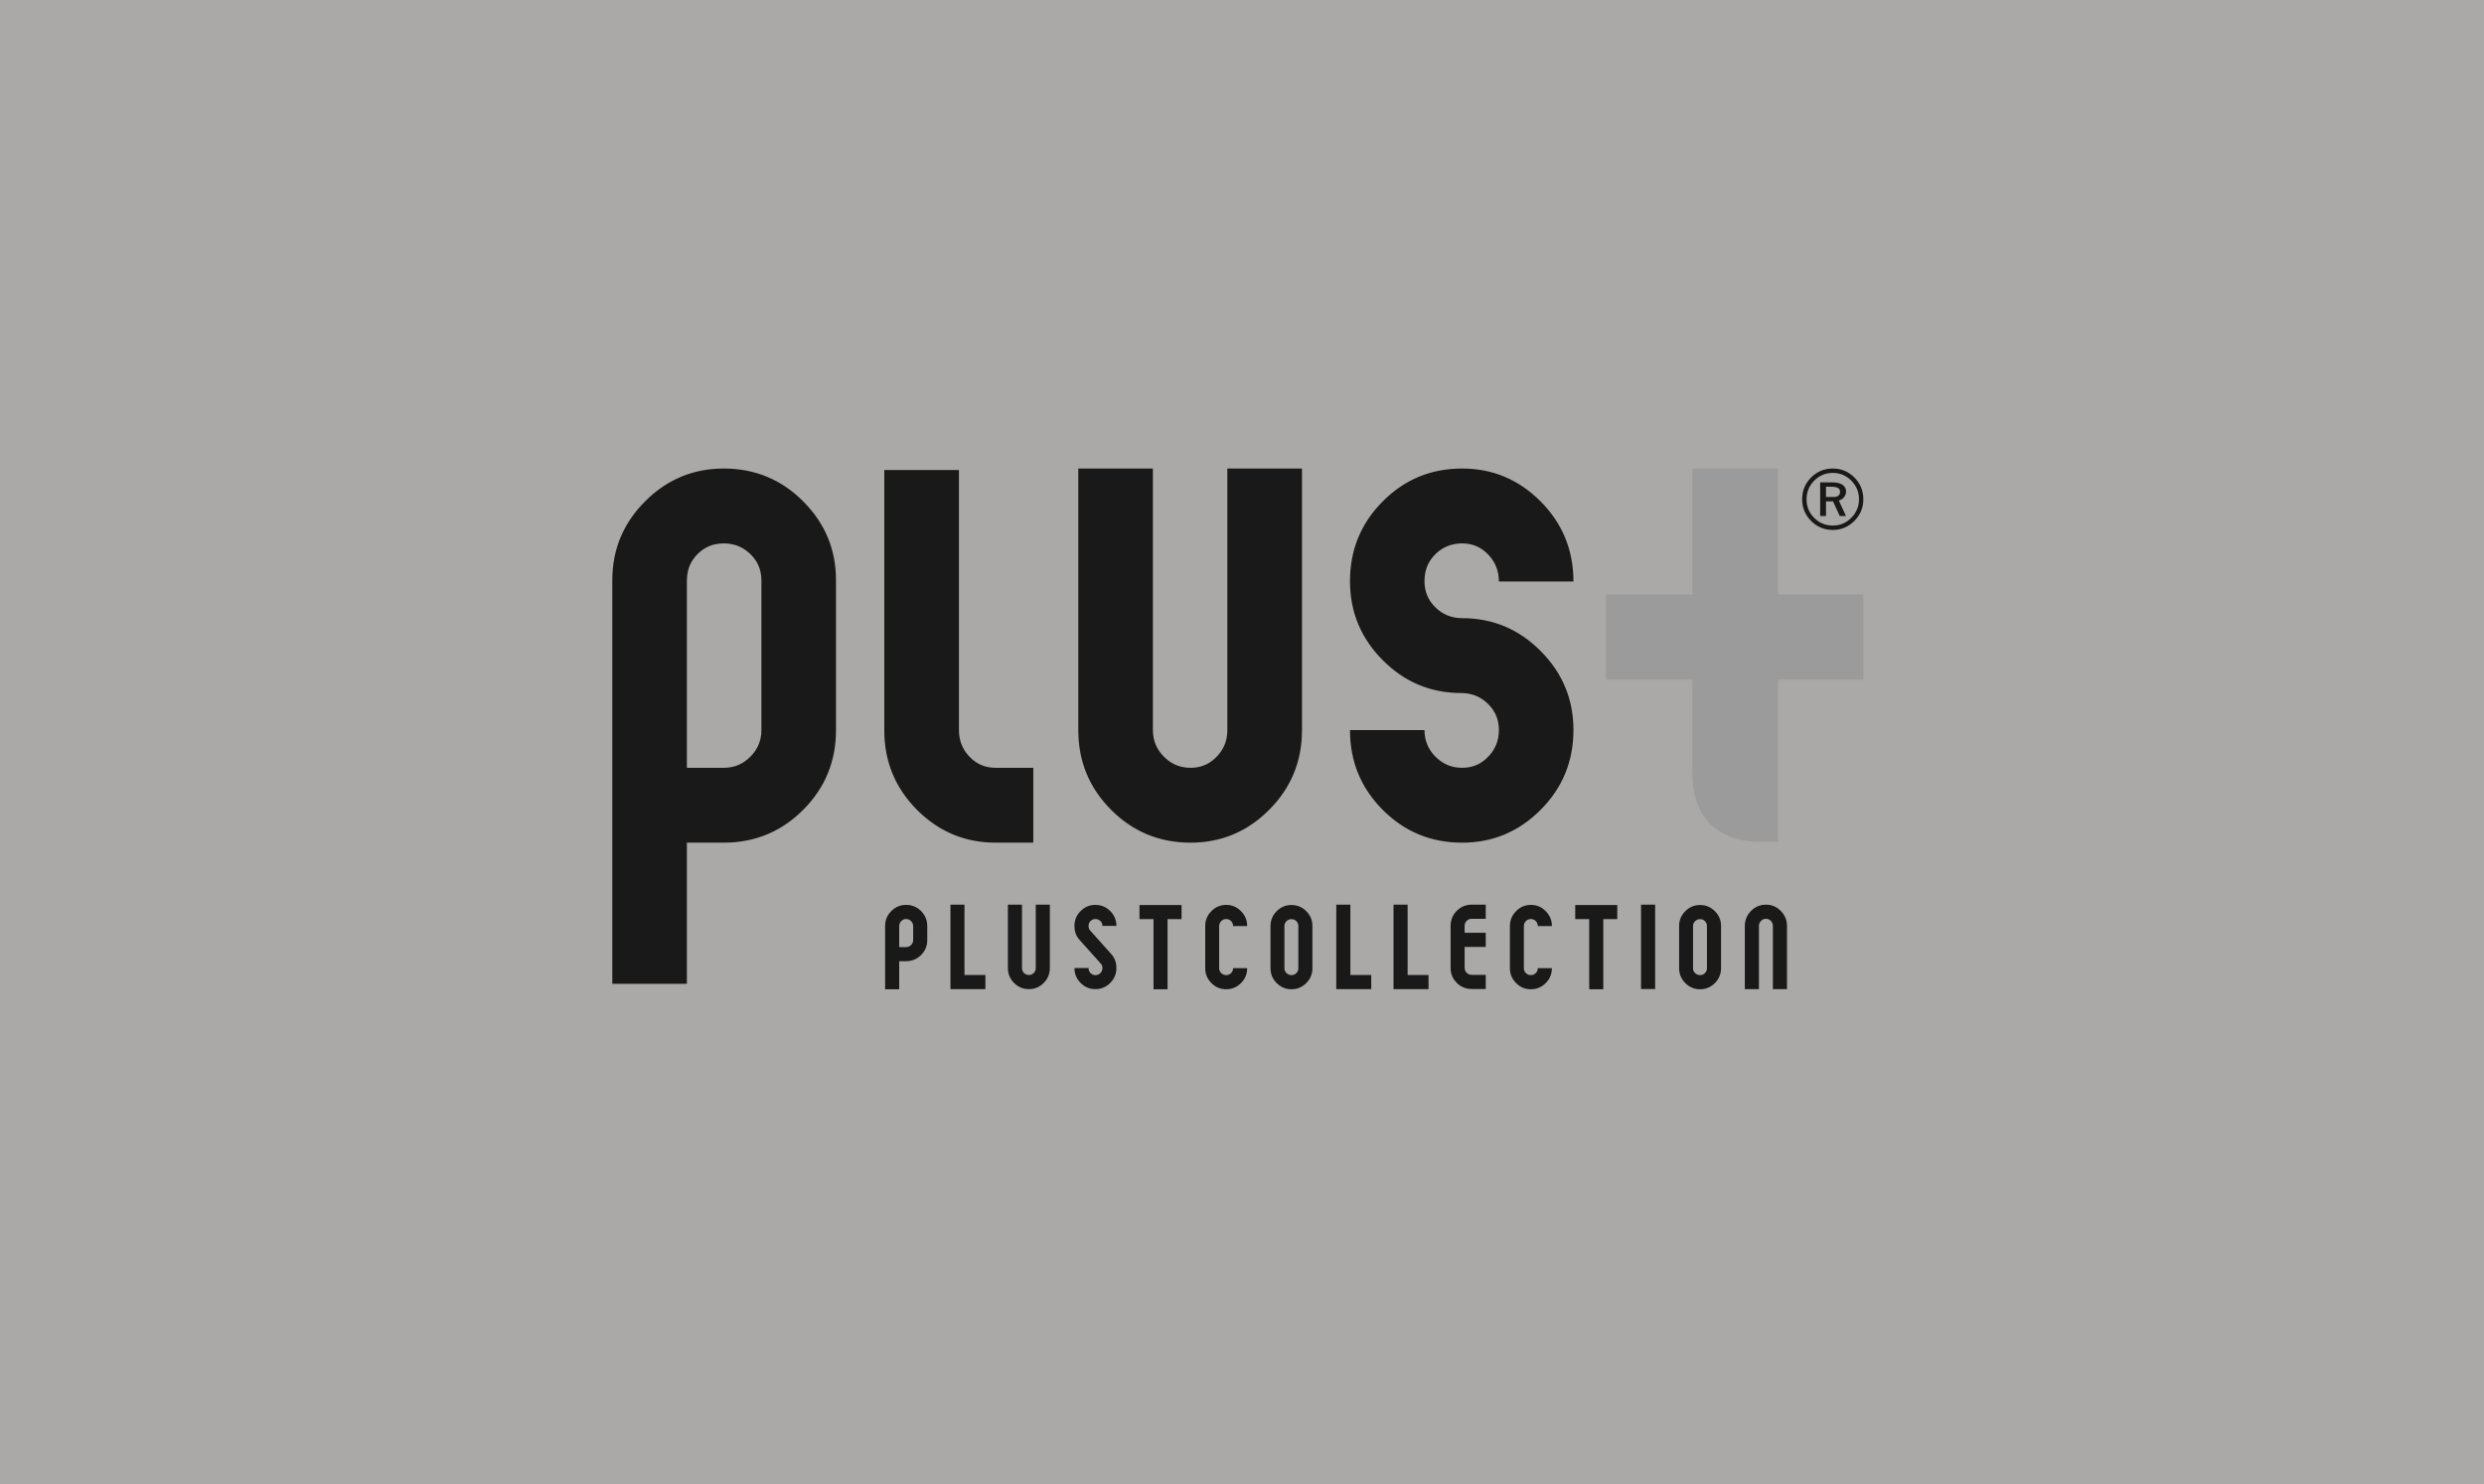 Plust Collection